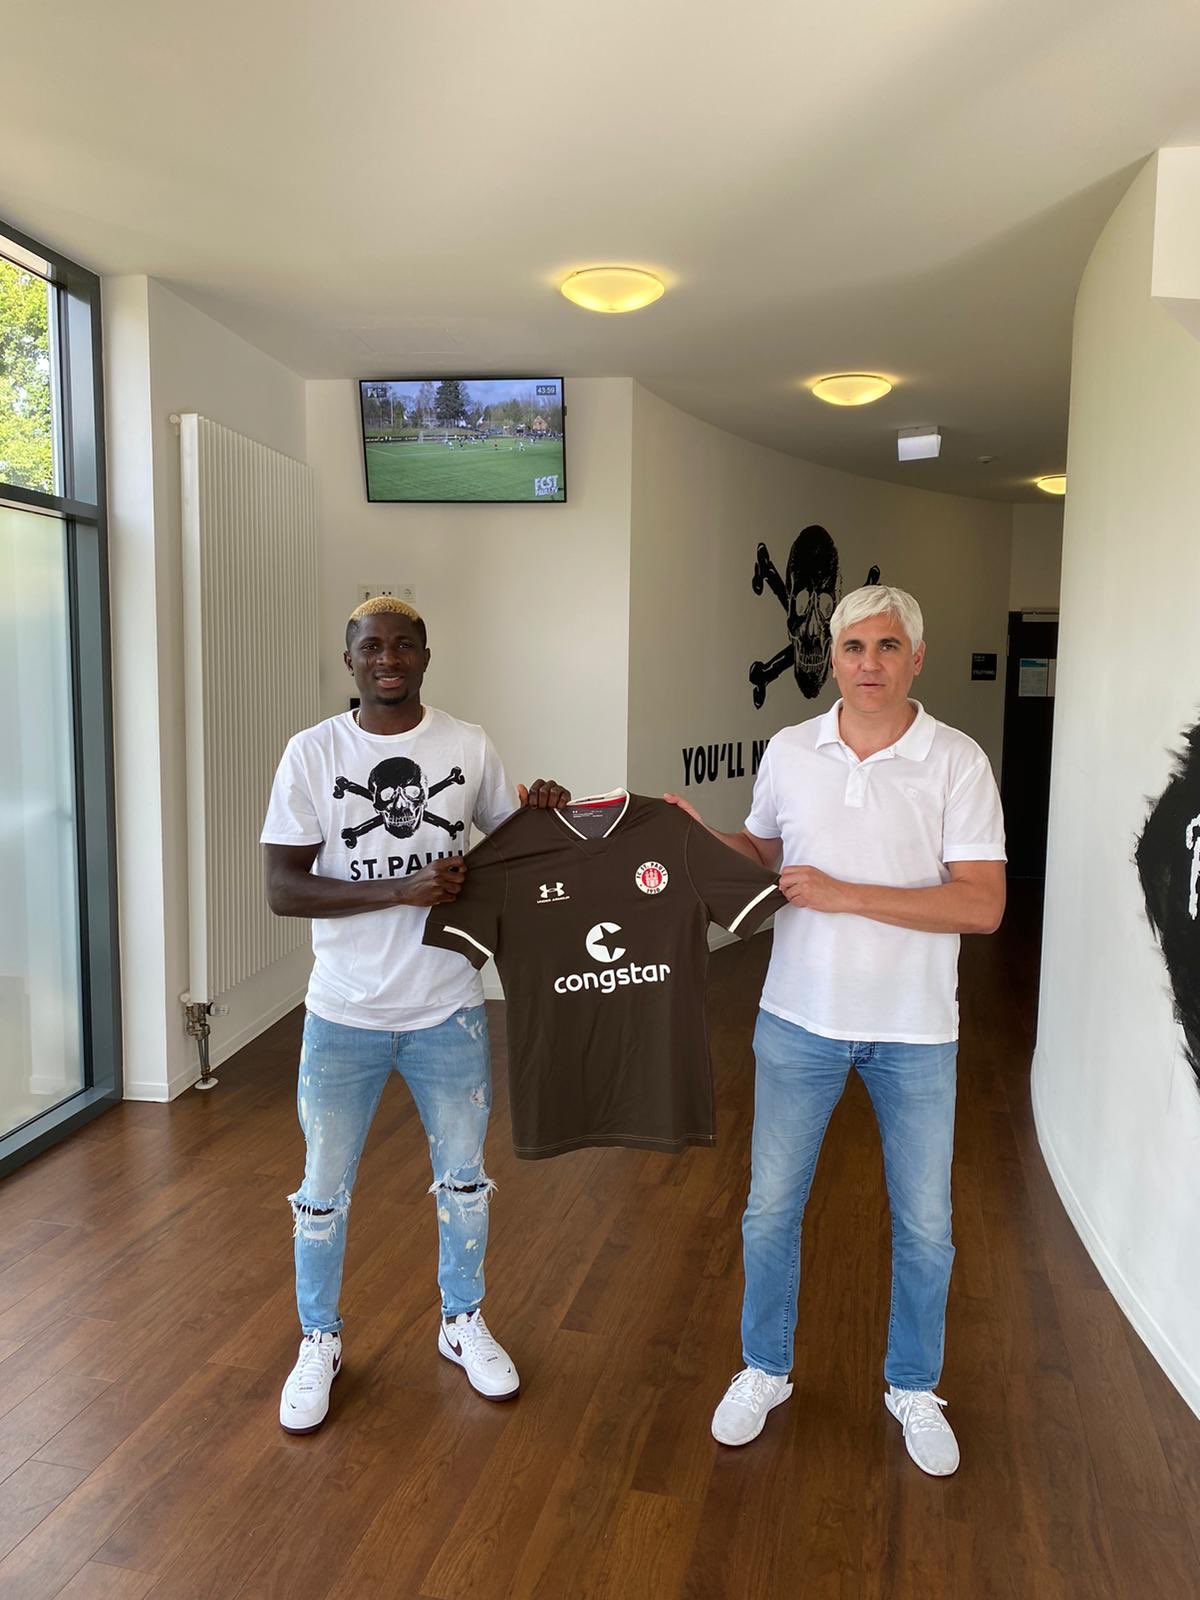 Ex-Flying Eagles Midfielder Aremu Joins German Club St. Pauli On Three-Year Contract